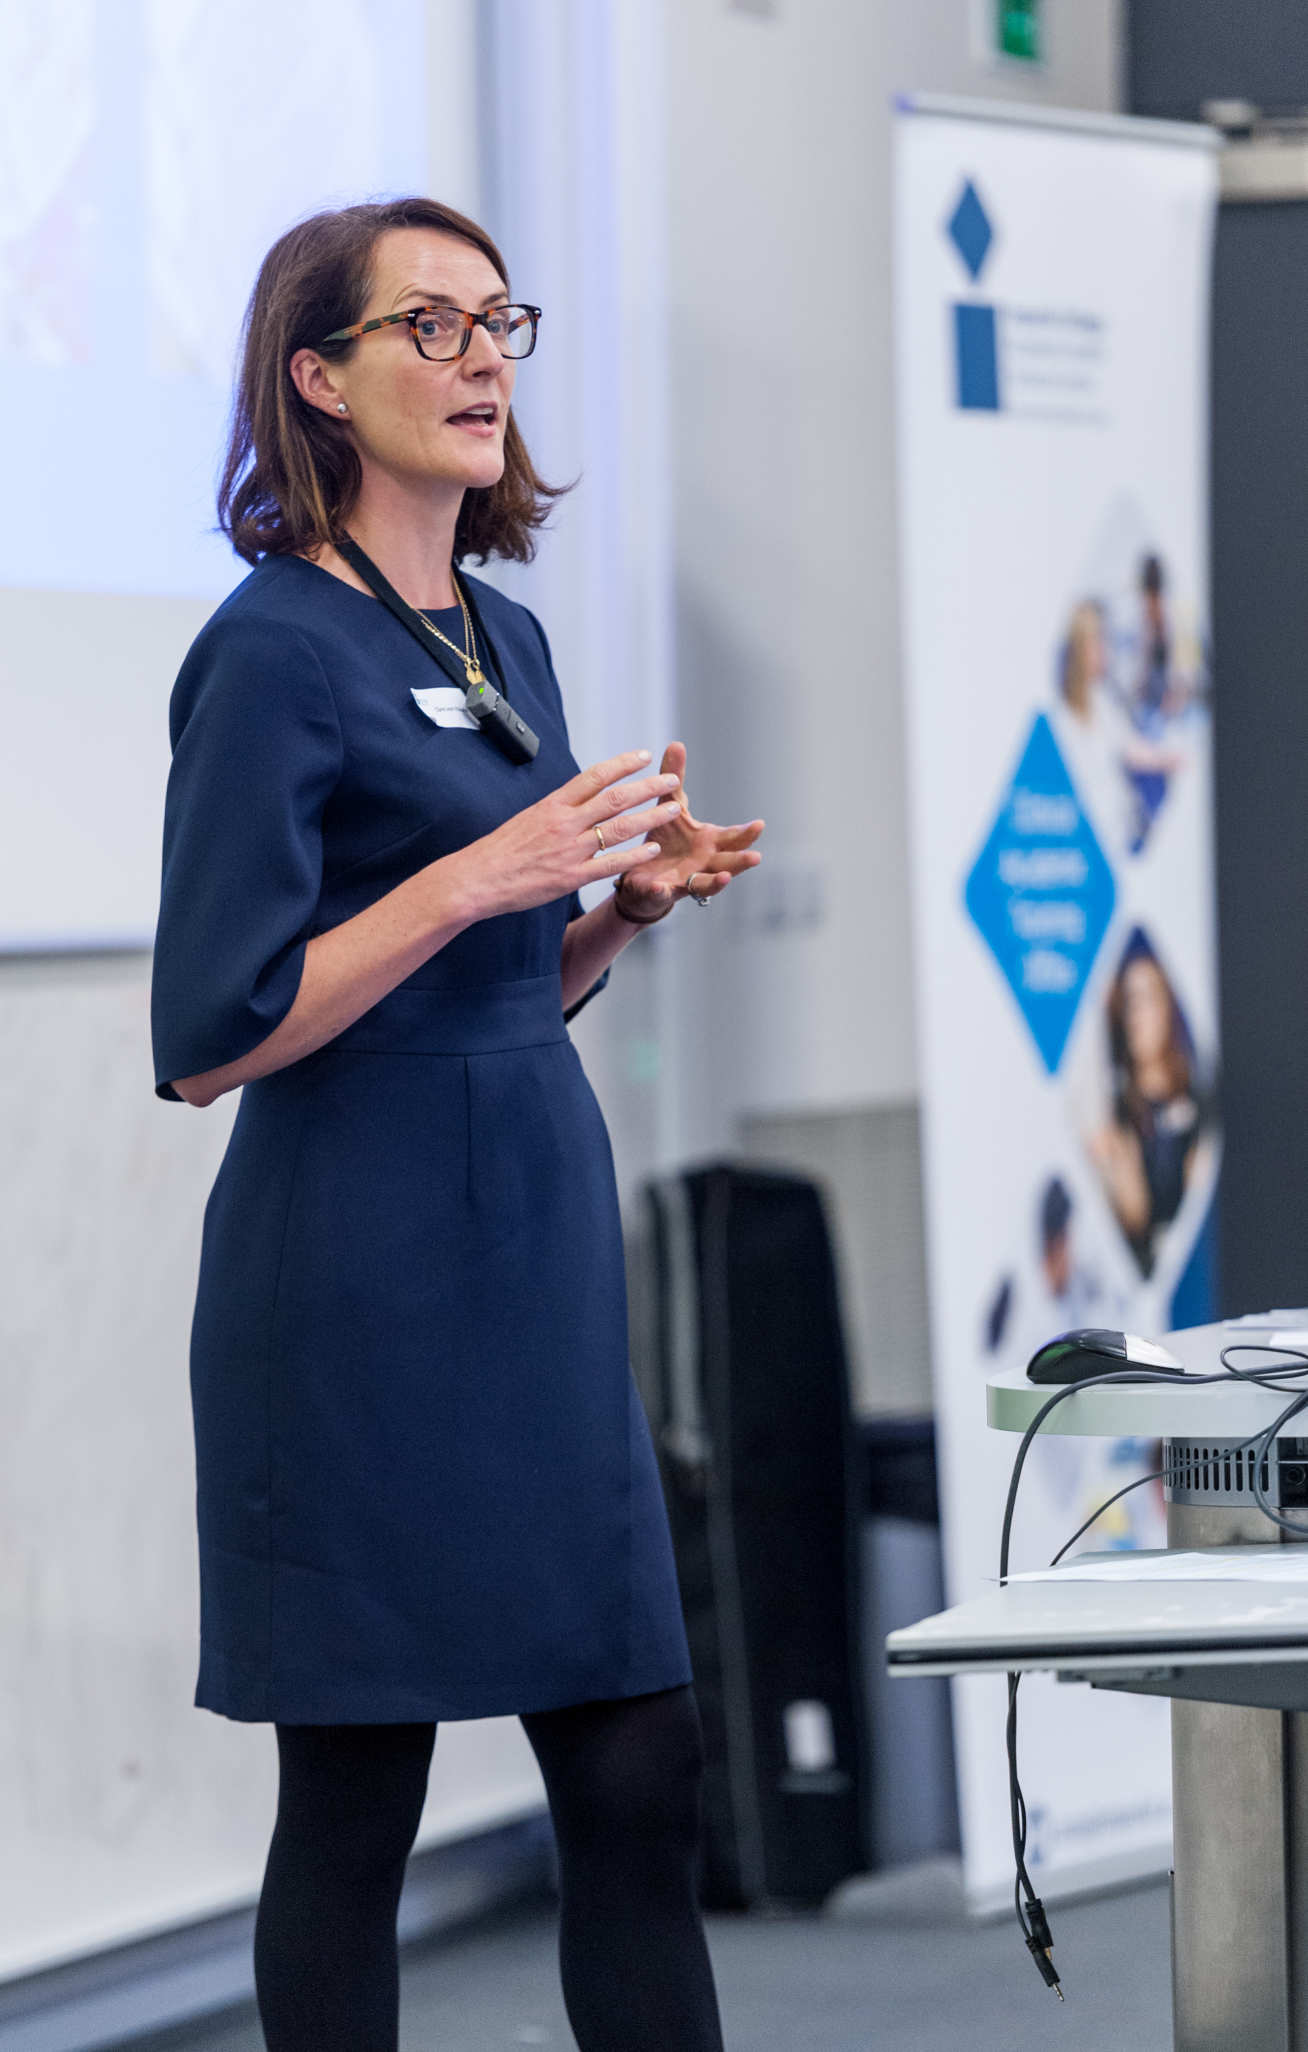 Clare Leon-Villapalos, from Imperial's Department of Surgery and Cancer, who is Clinical Practice Educator in Critical Care at Imperial College Healthcare NHS Trust